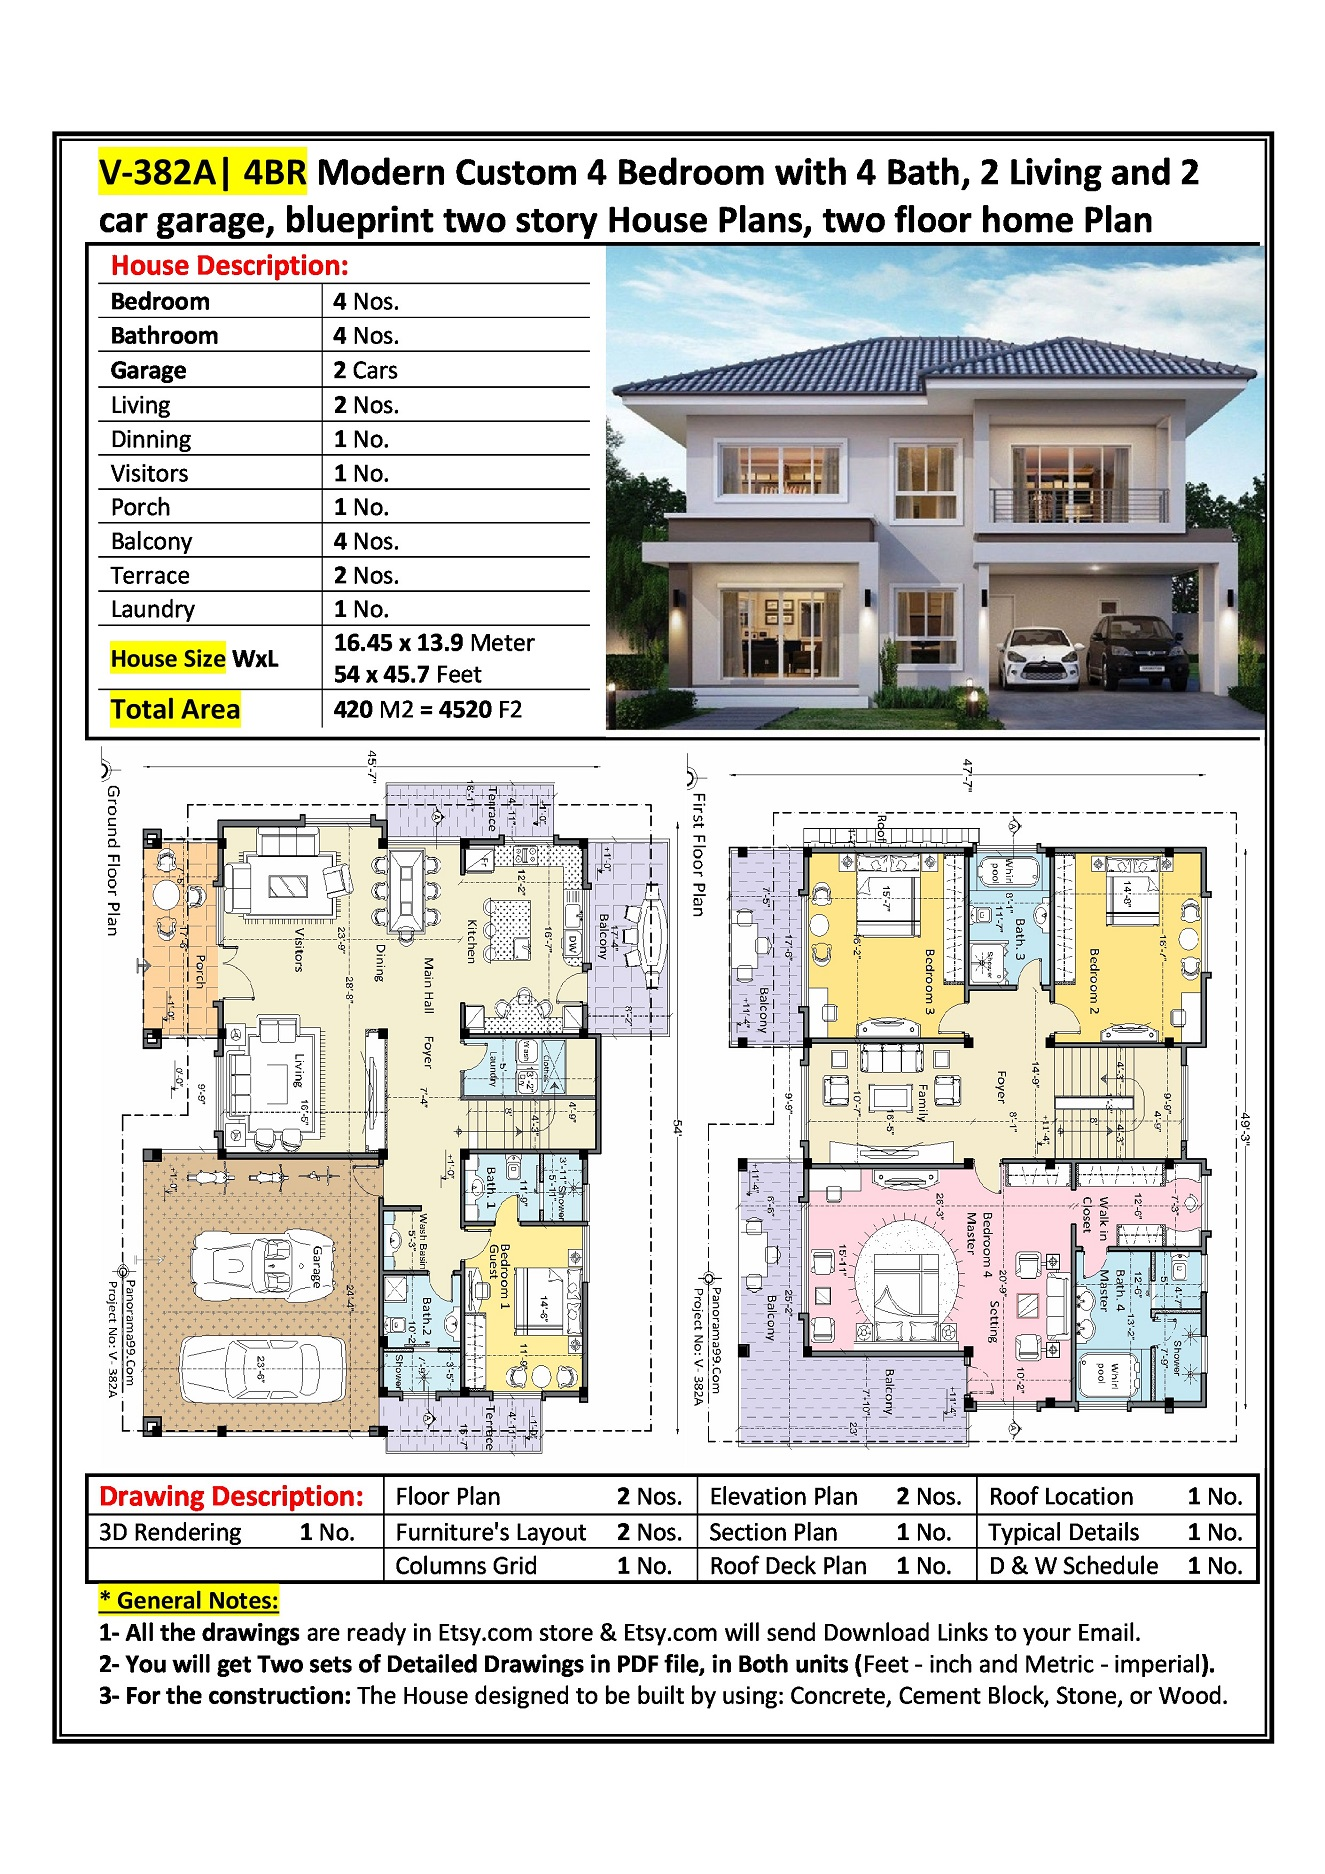 V 382a 4br Modern Custom 4 Bedroom With 4 Bath 2 Living And 2 Car Garage Blueprint Two Story House Plans Two Floor Home Plan